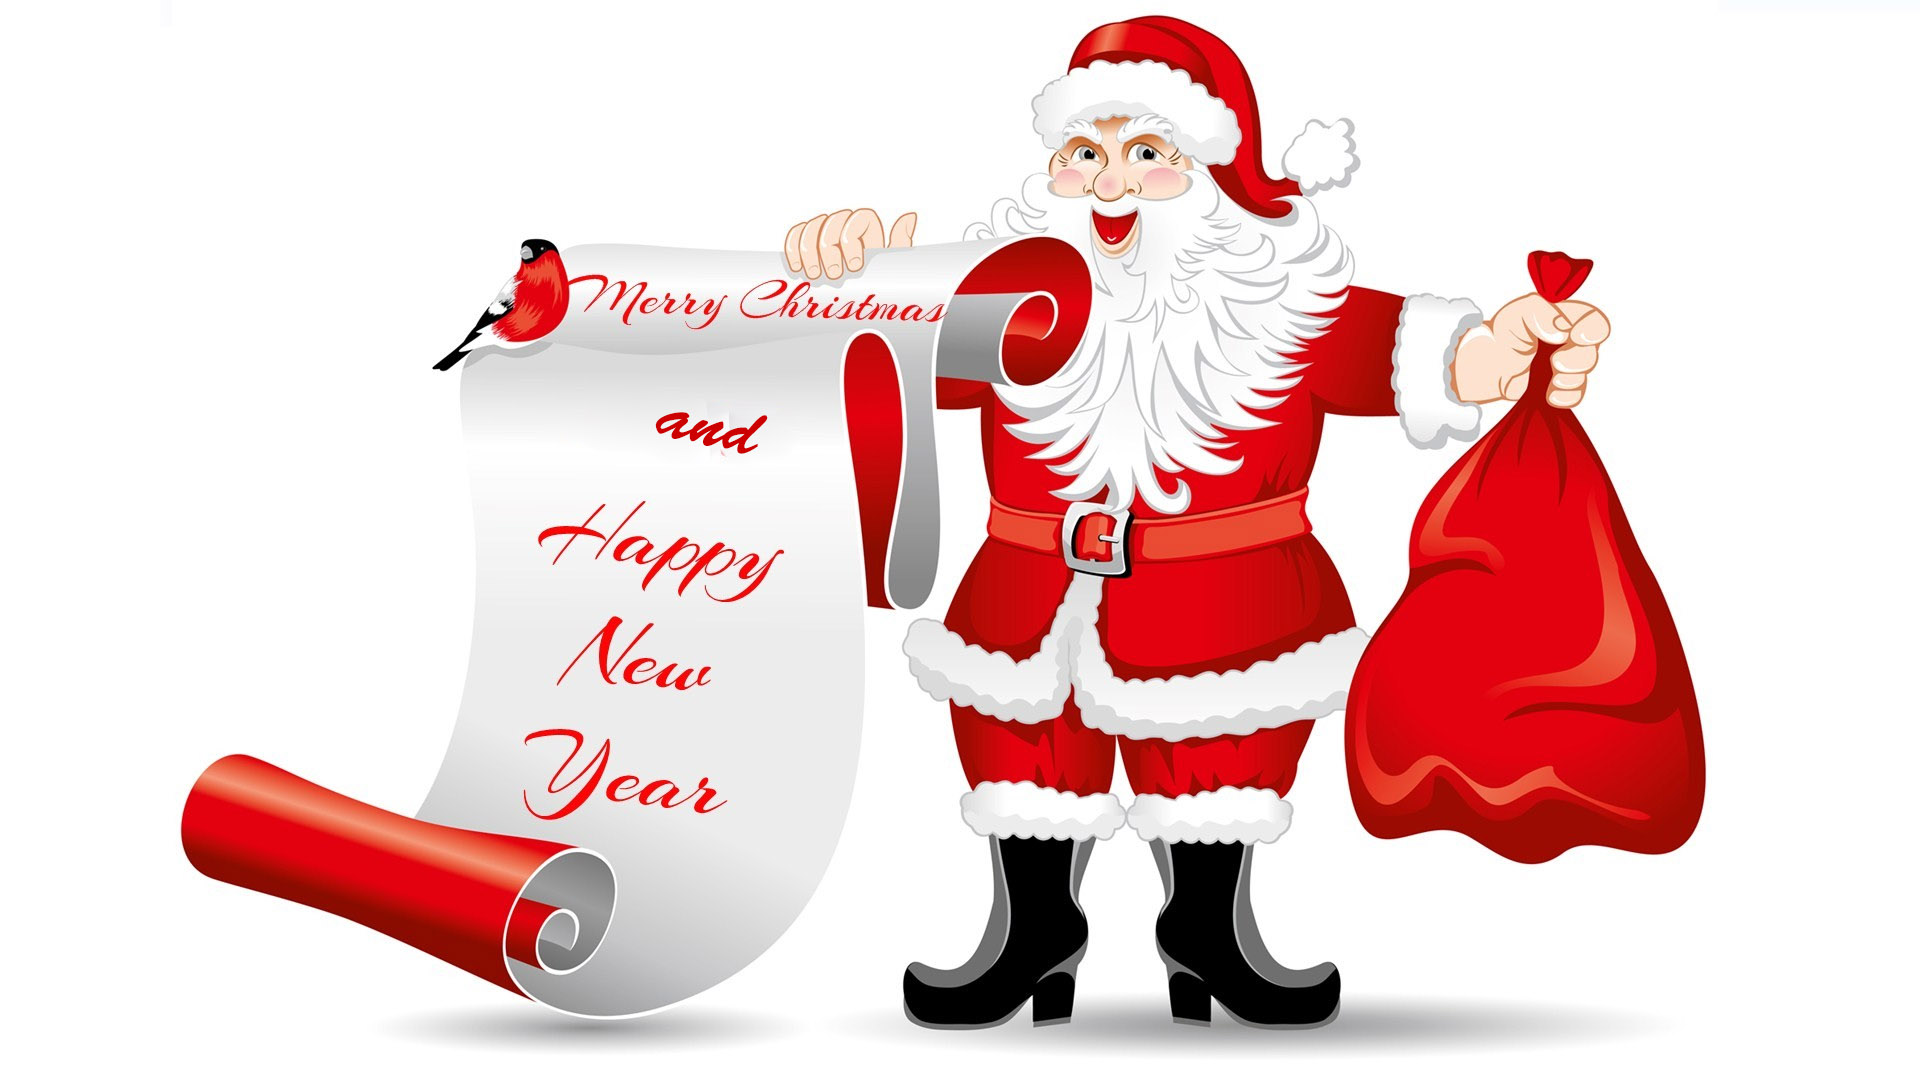 Christmas And New Year Wishes Images Free Download